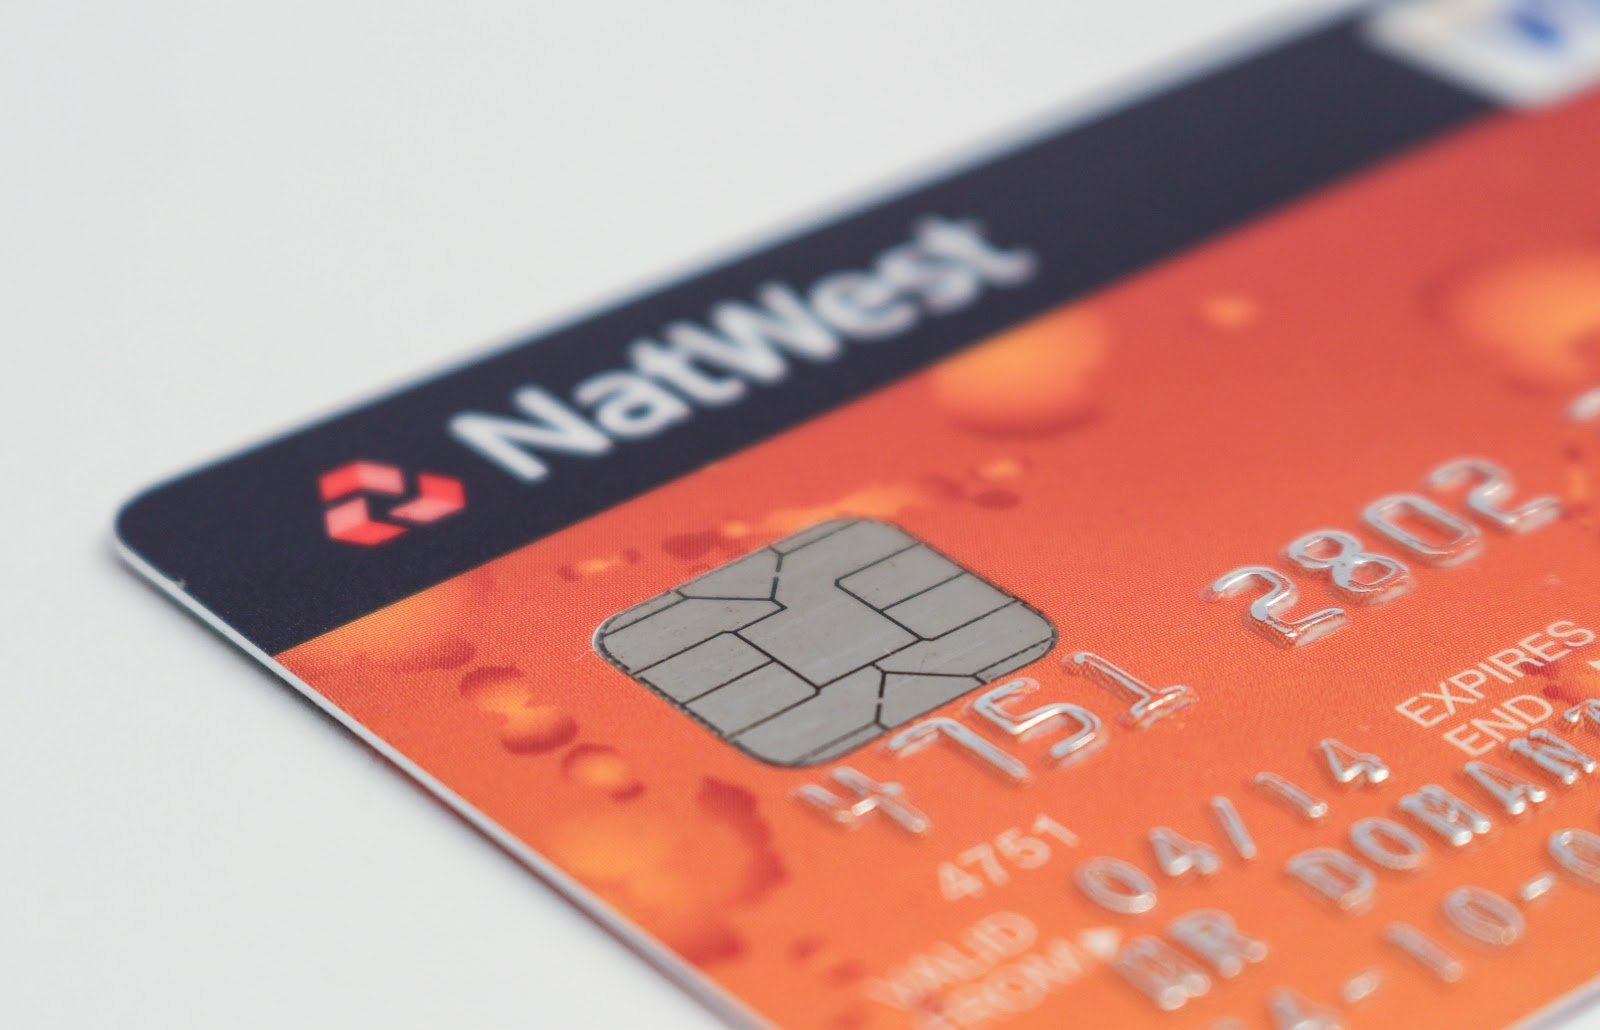 An orange and navy NatWest credit card. those who have had difficulty repaying other loans in the past.